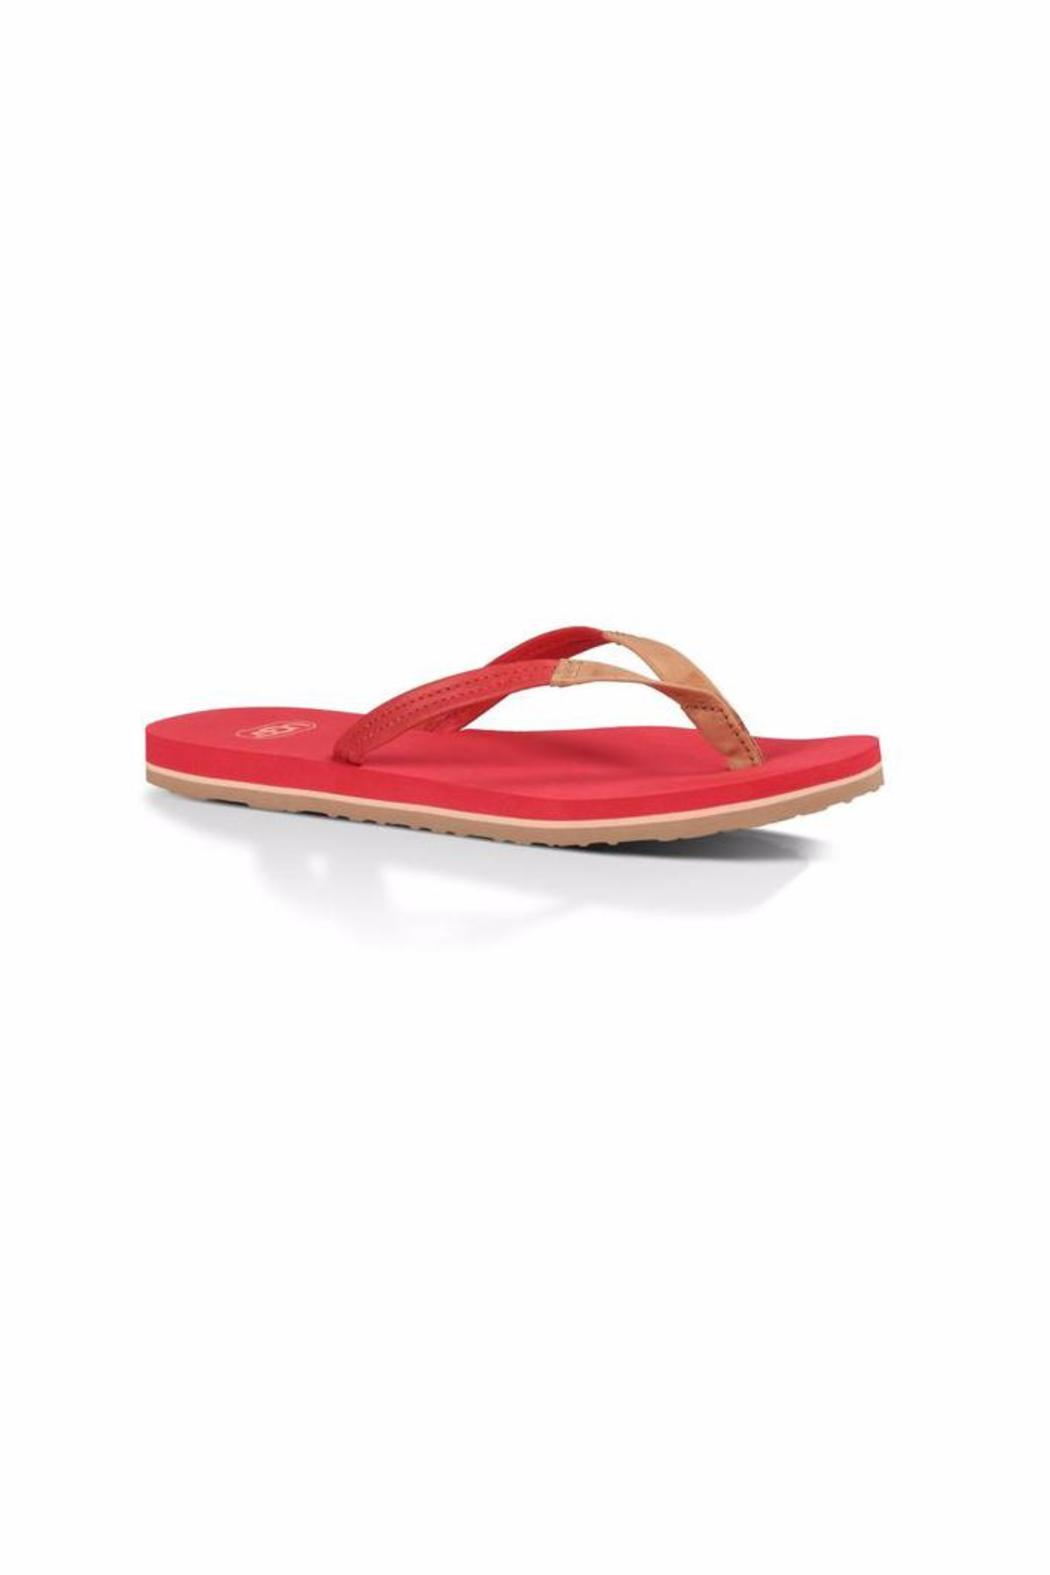 Ugg Australia Ugg Magnolia Flip Flop From Los Angeles By -2588